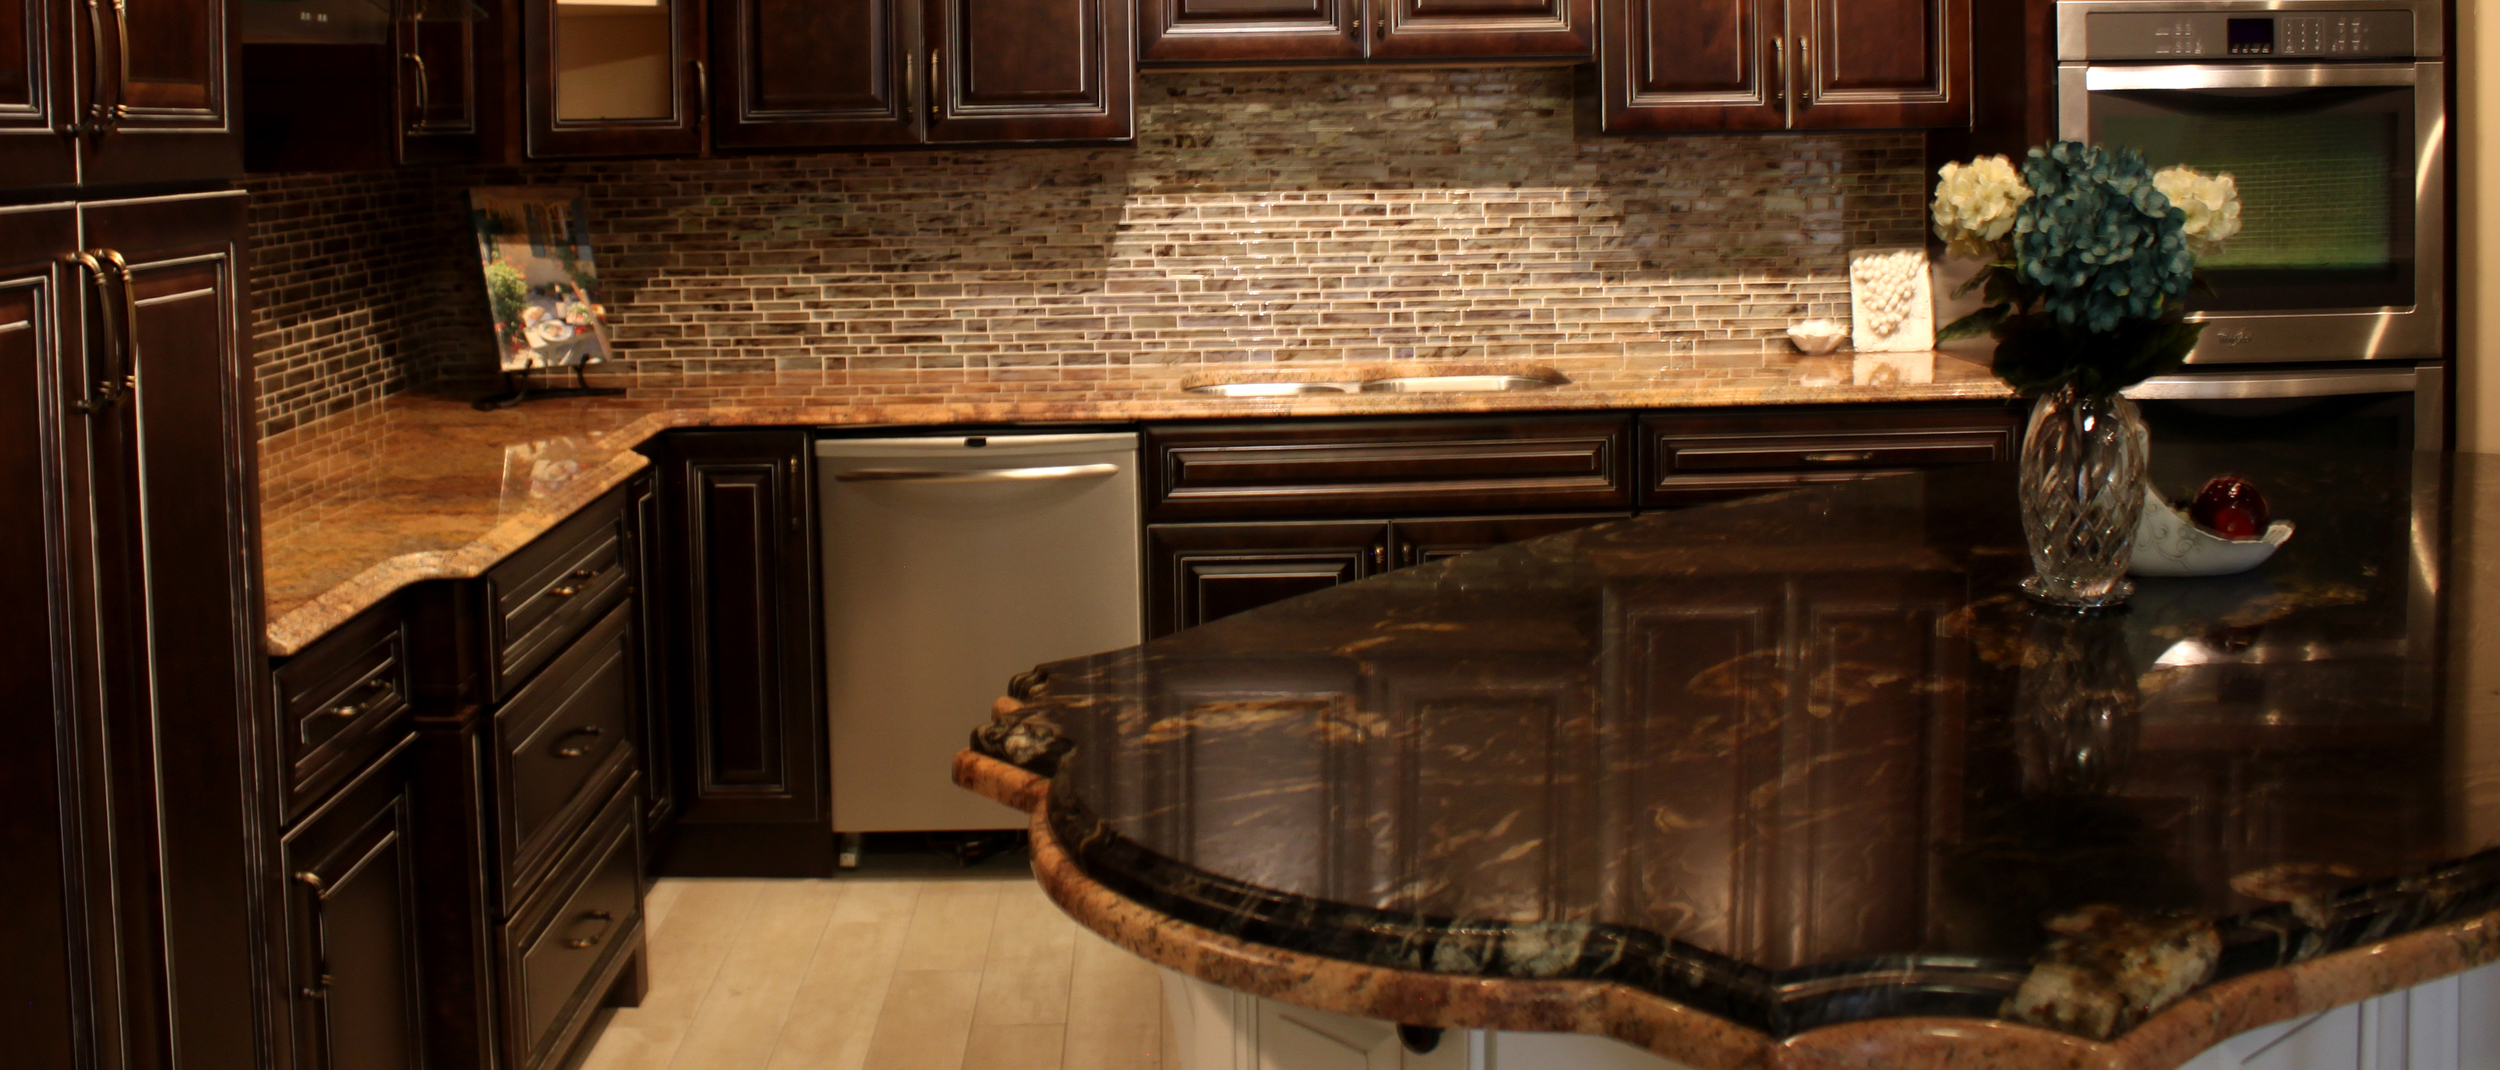 Palatine Kitchen Cabinets Sinks And Countertops Rock Counter